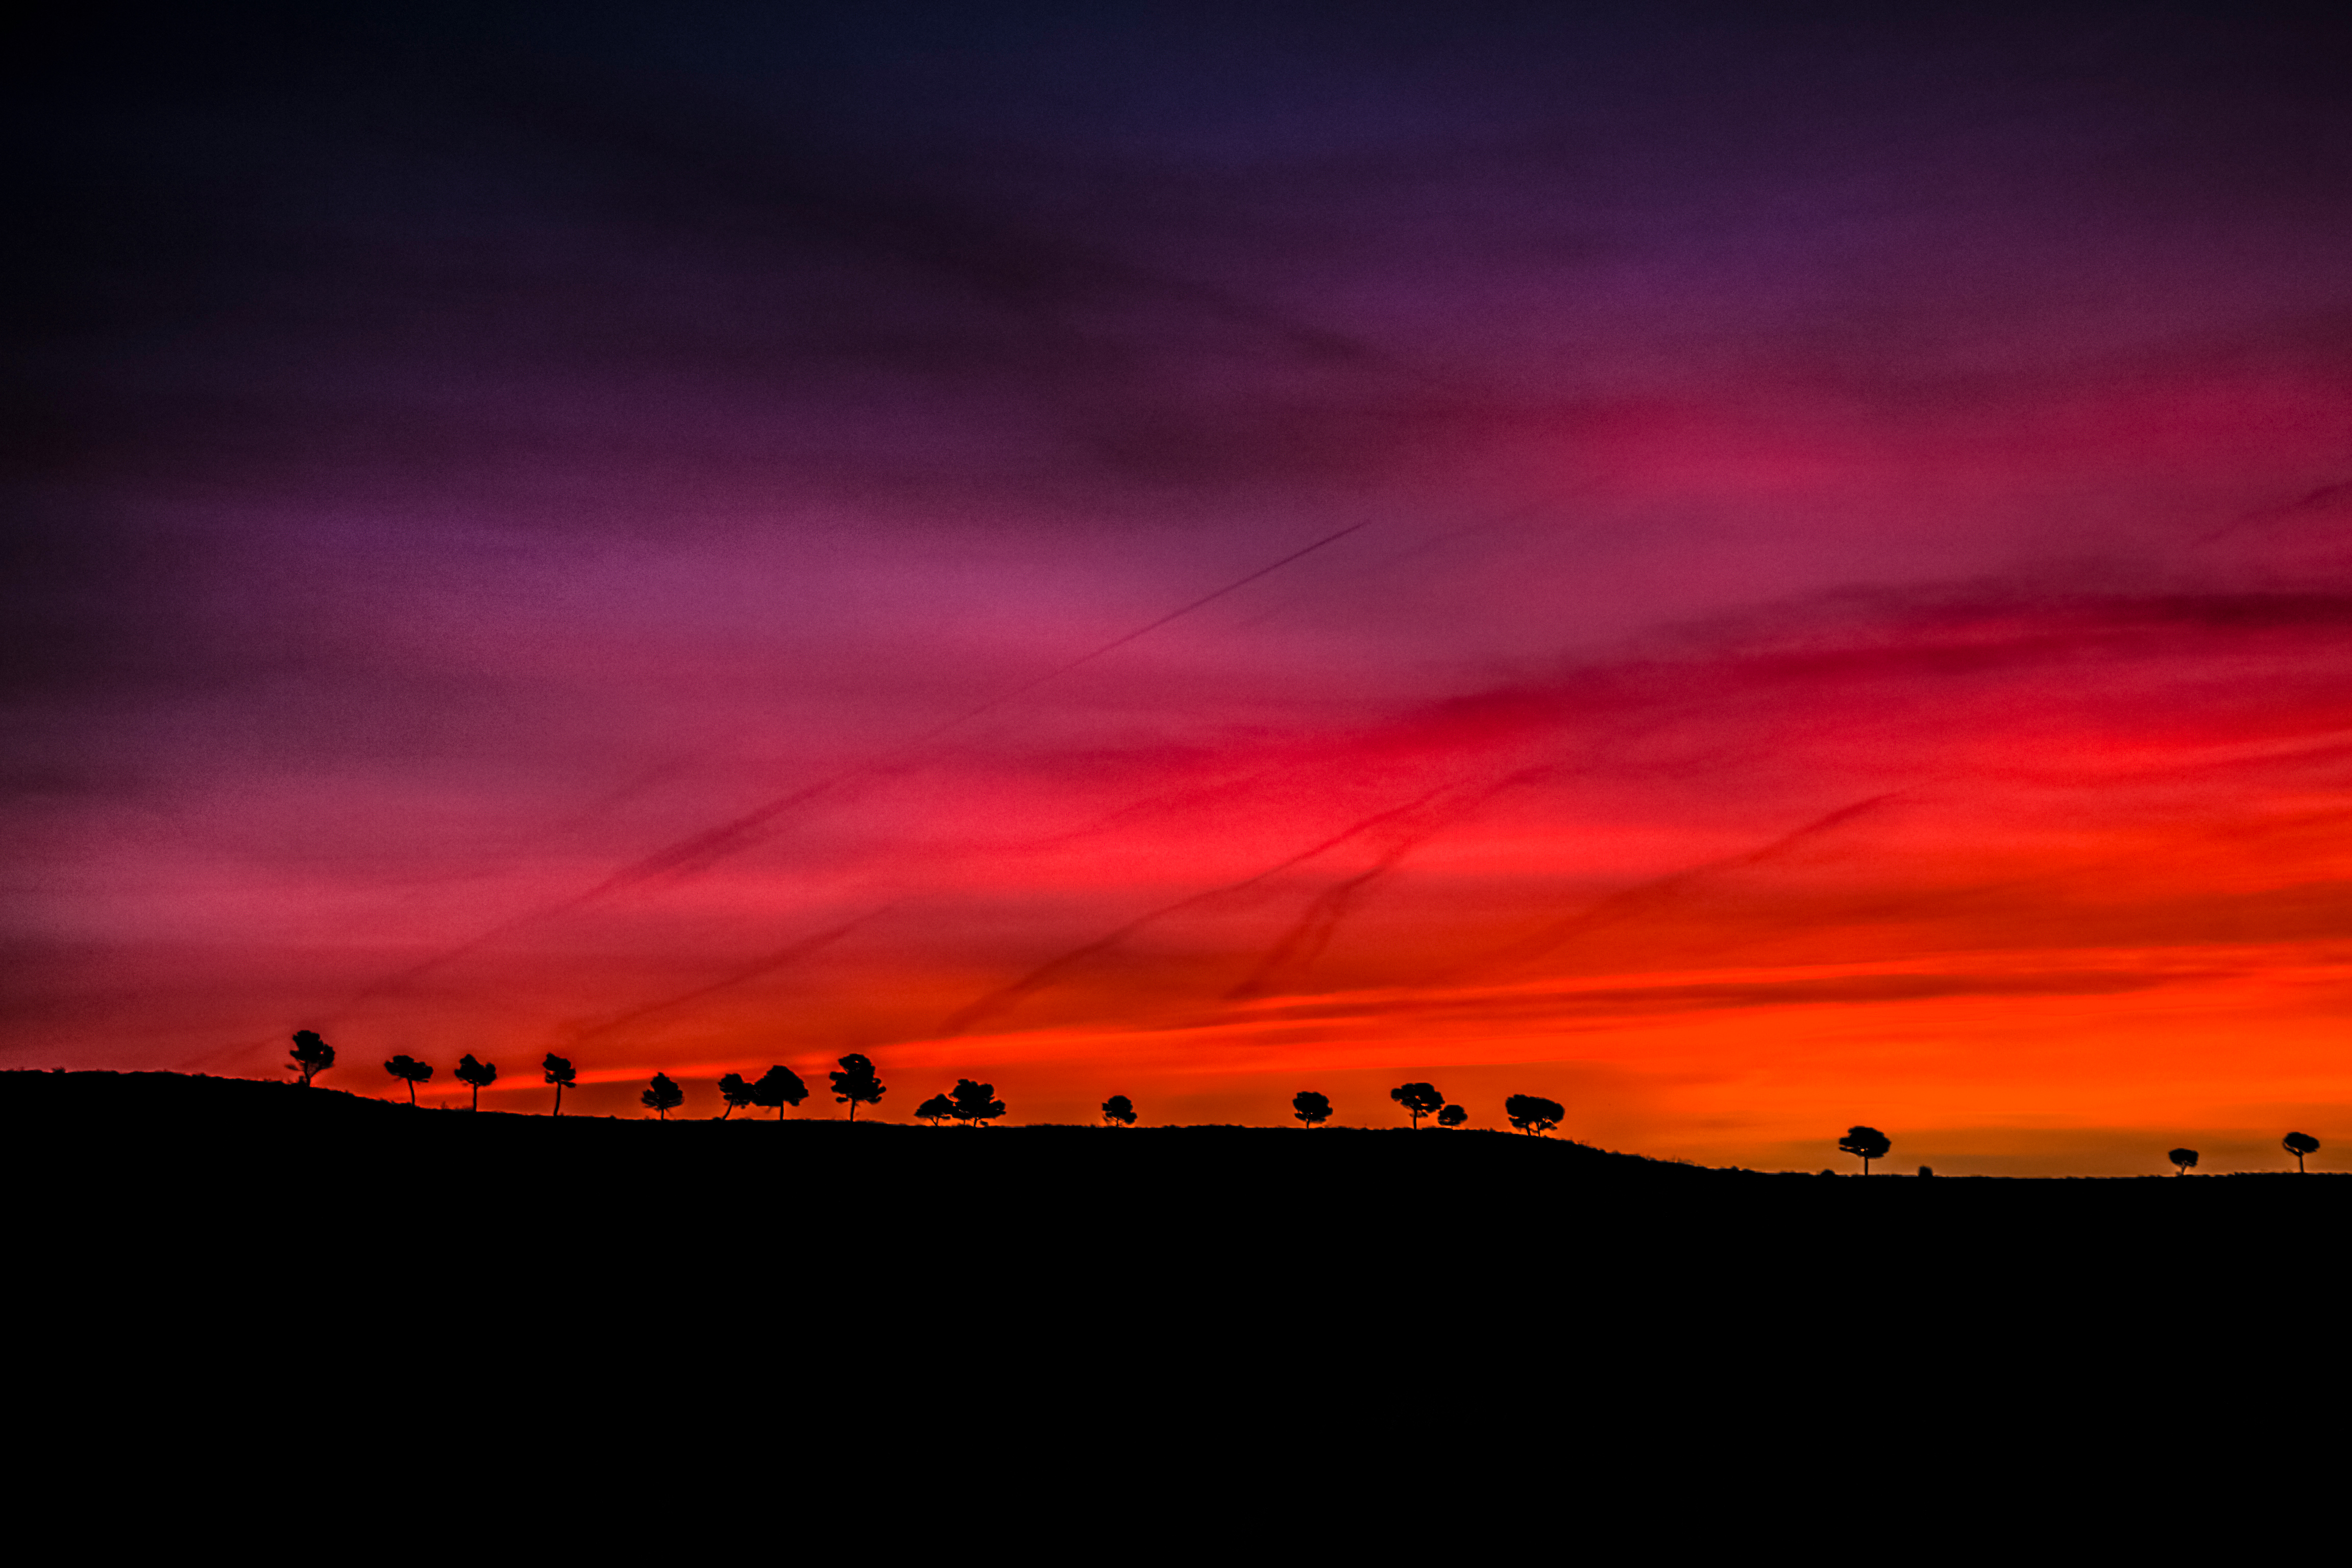 Early Morning Dark Red Scenery 4k, HD Nature, 4k ...